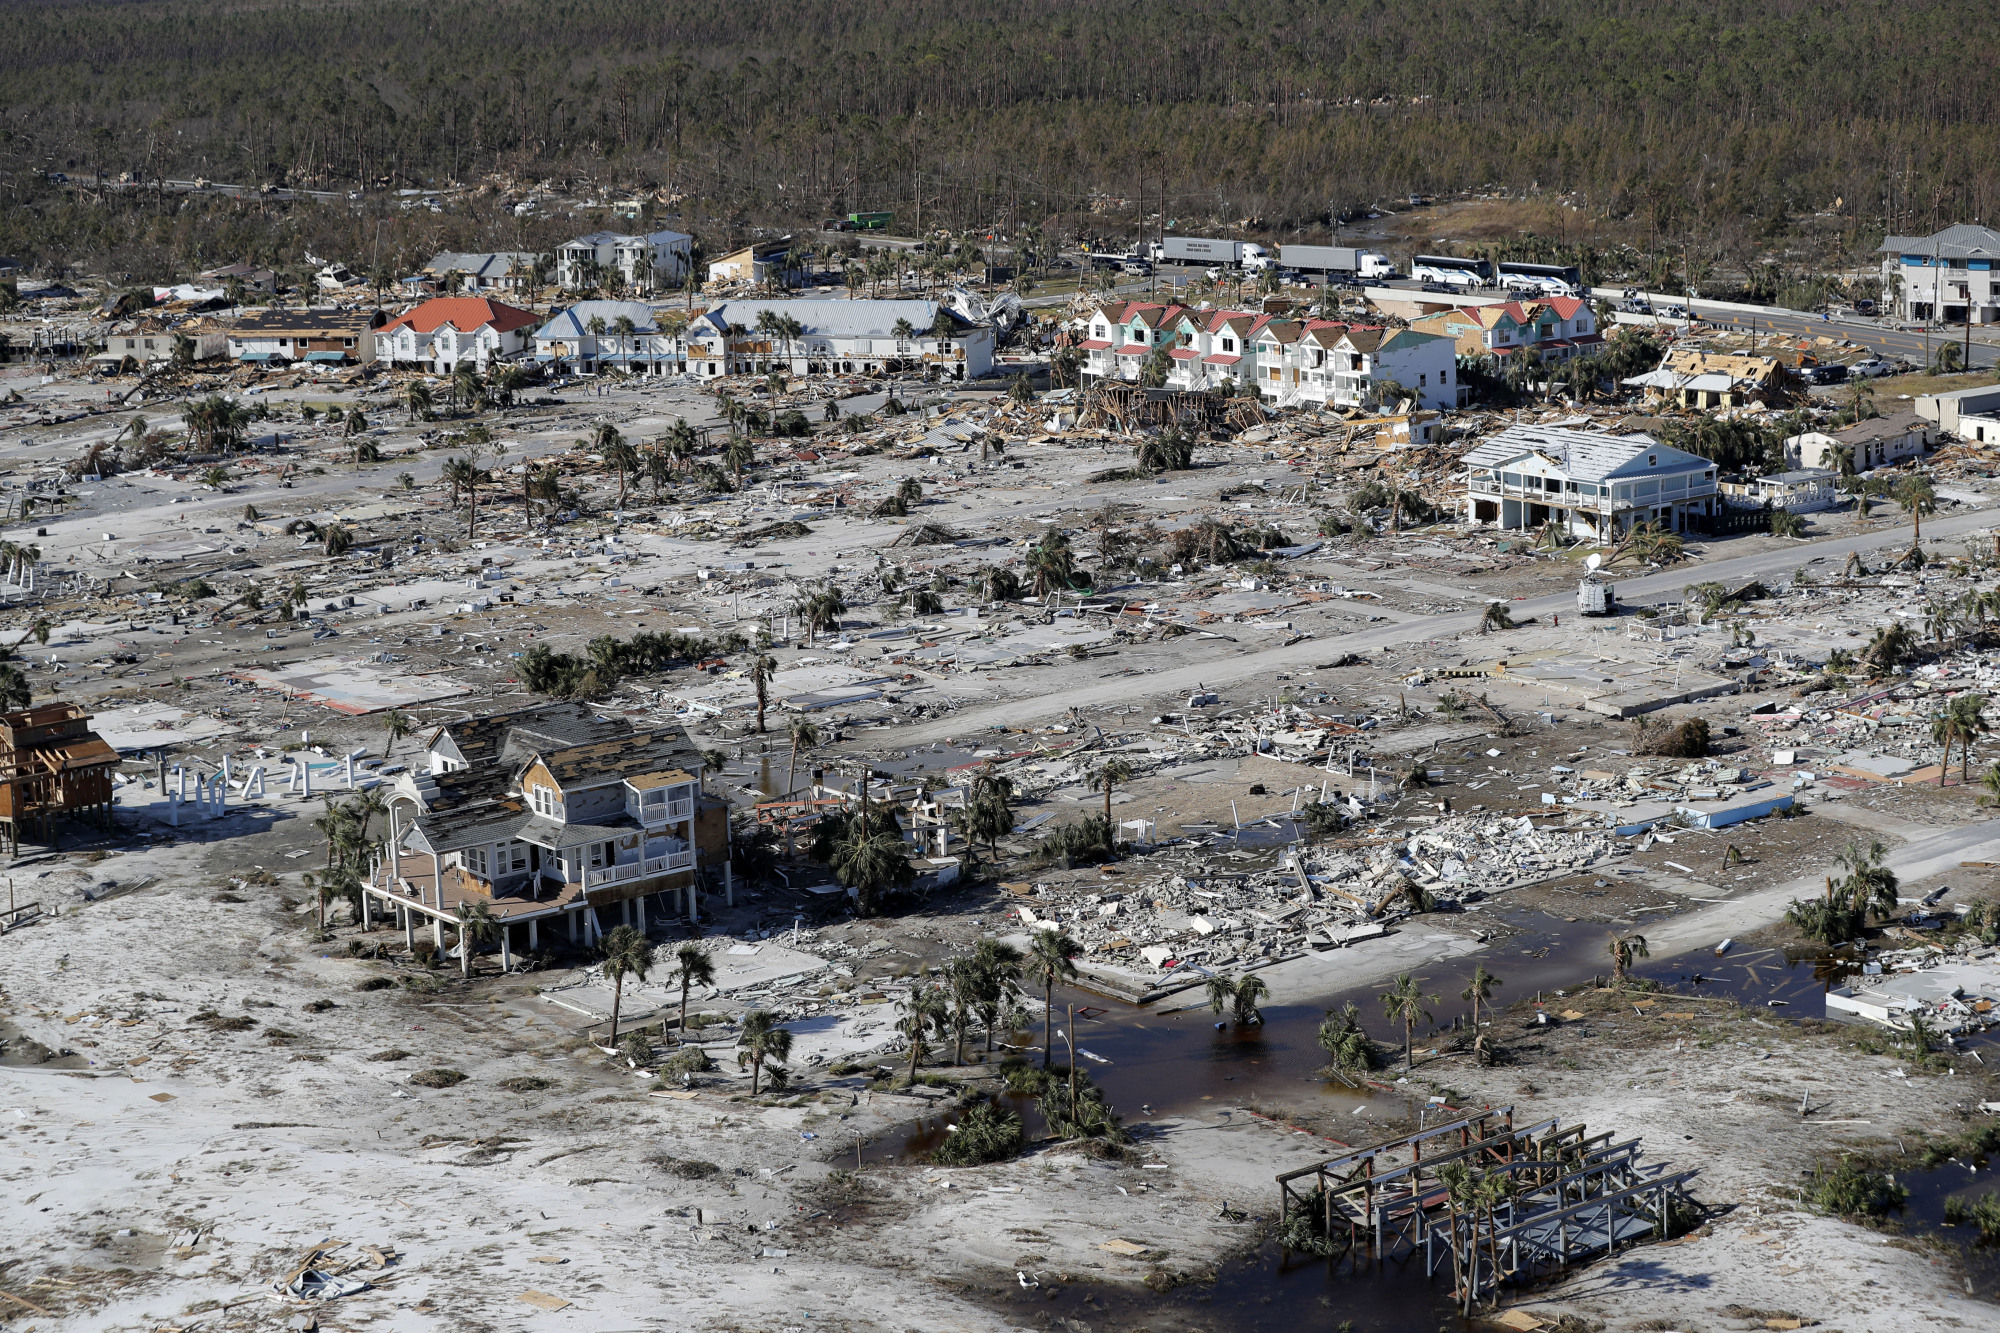 Devastation from Hurricane Michael is seen in this aerial photo taken over Mexico Beach, Florida, on Friday. Blocks and blocks of homes were demolished, reduced to piles of splintered lumber or mere concrete slabs, by the most powerful hurricane to hit the continental U.S. in nearly 50 years. | AP